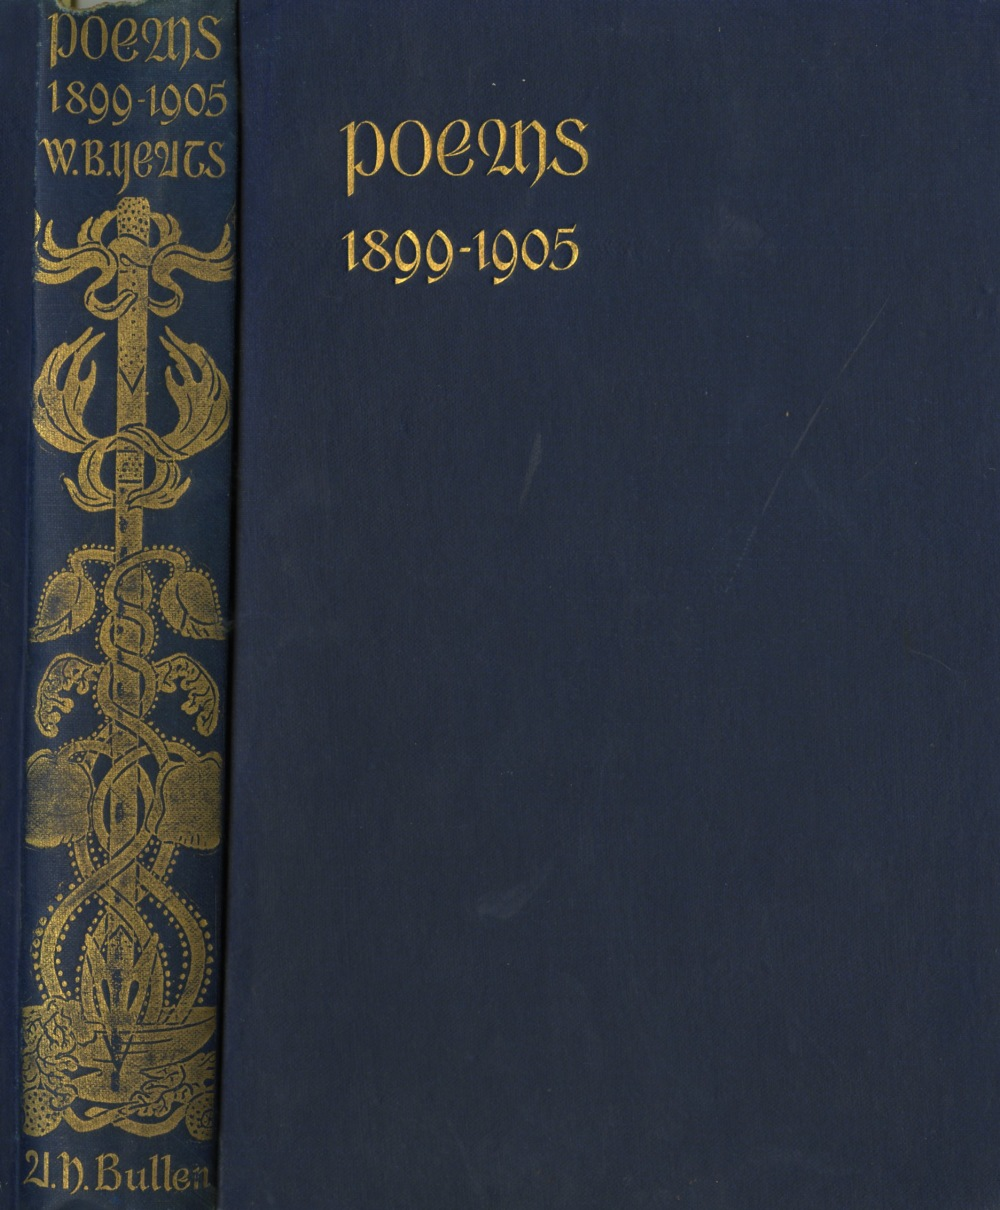 Yeats (W.B.) Poems 1899 - 1905, 8vo L. (A.H. Bullen) 1906., hf. title; Poems - Second Series, 8vo L.